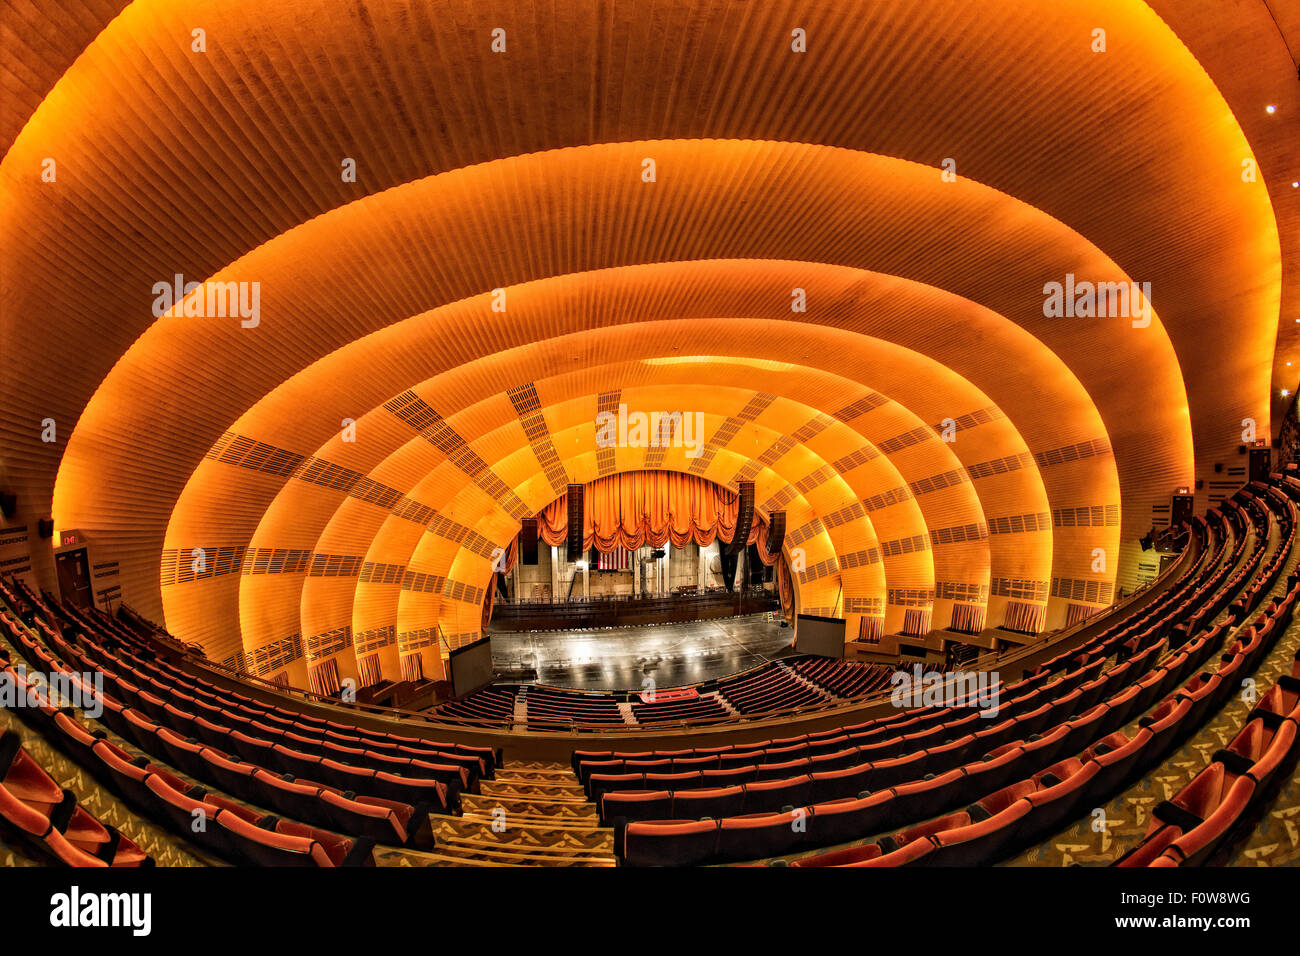 Interior view to the art deco architectural details of the iconic landmark Radio City Music Hall Theater. - Stock Image